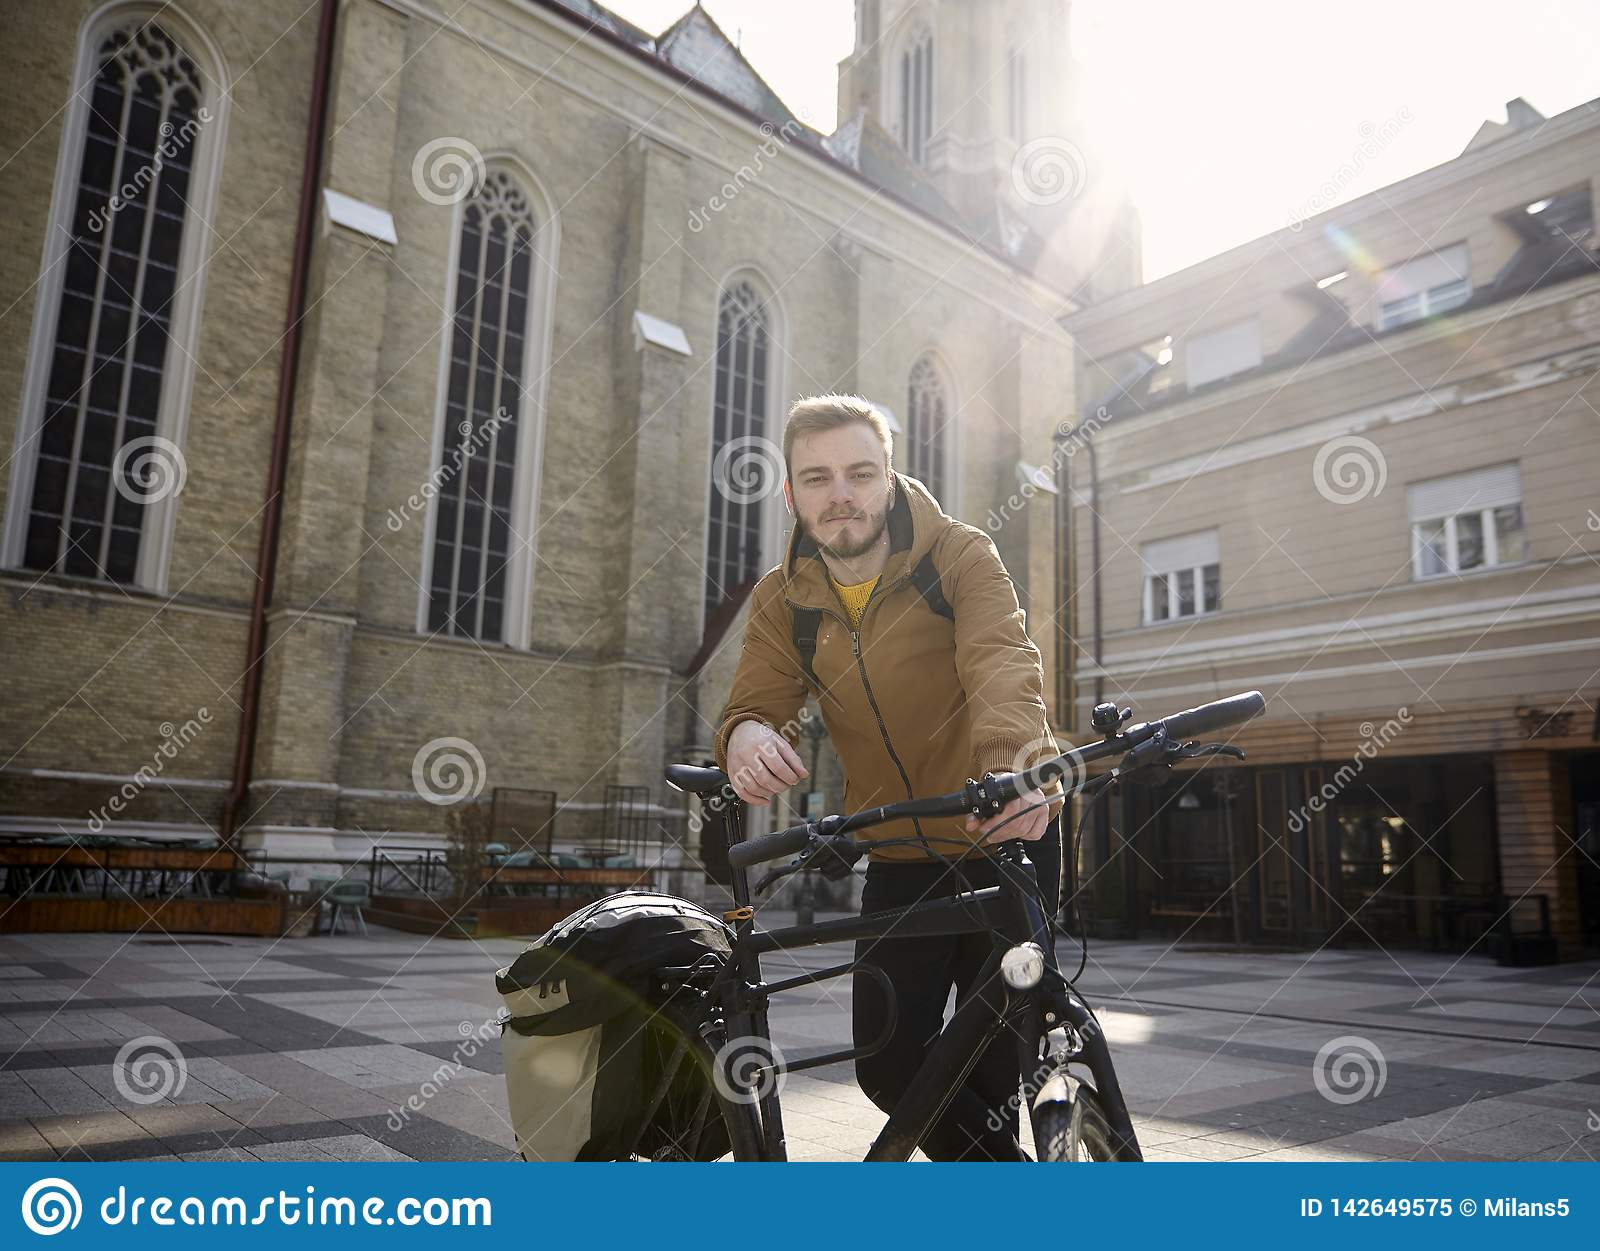 One young man, 20-29 years old, posing with his bicycle in a beautiful city square in Europe, Serbia, Novi Sad